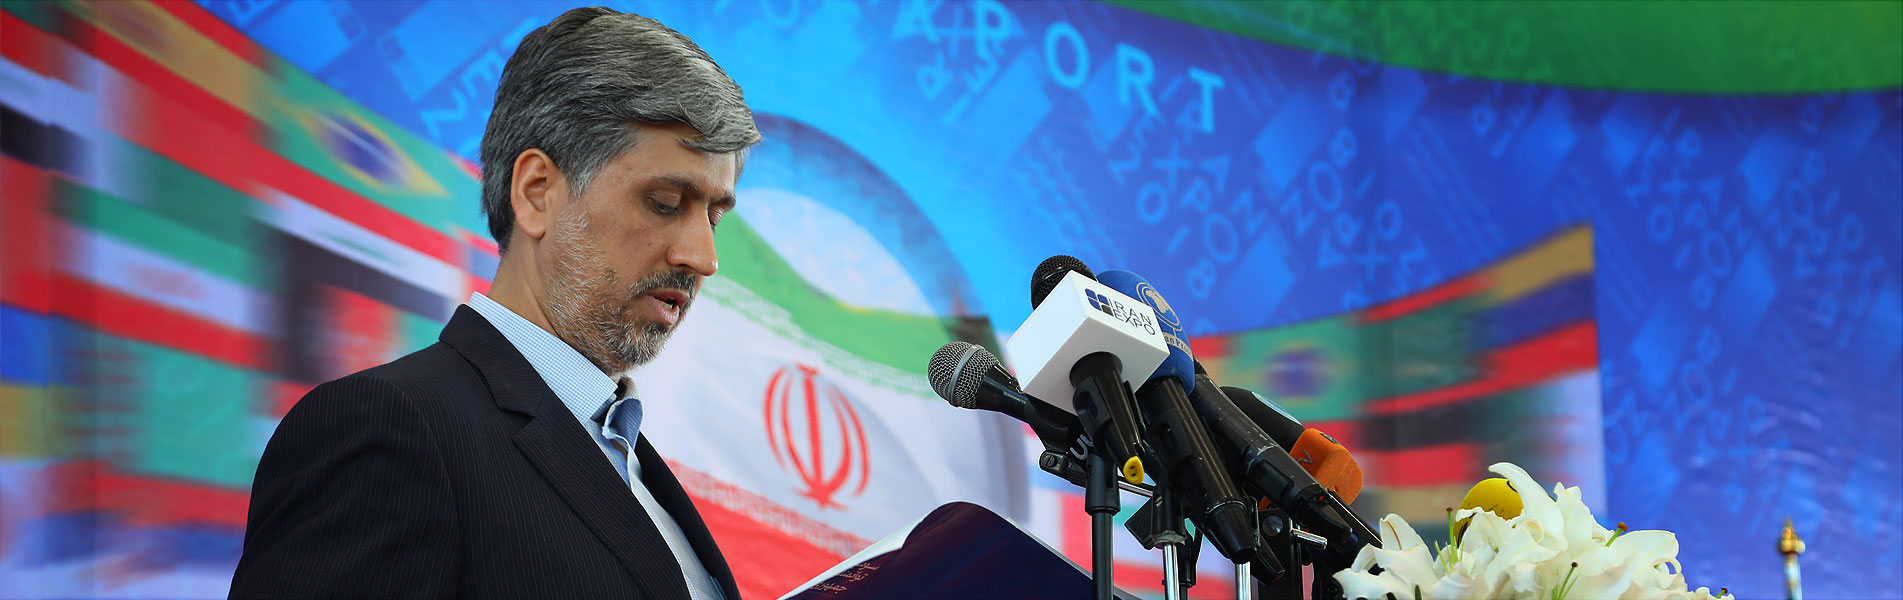 (Opening Ceremony (Iran Expo 2018